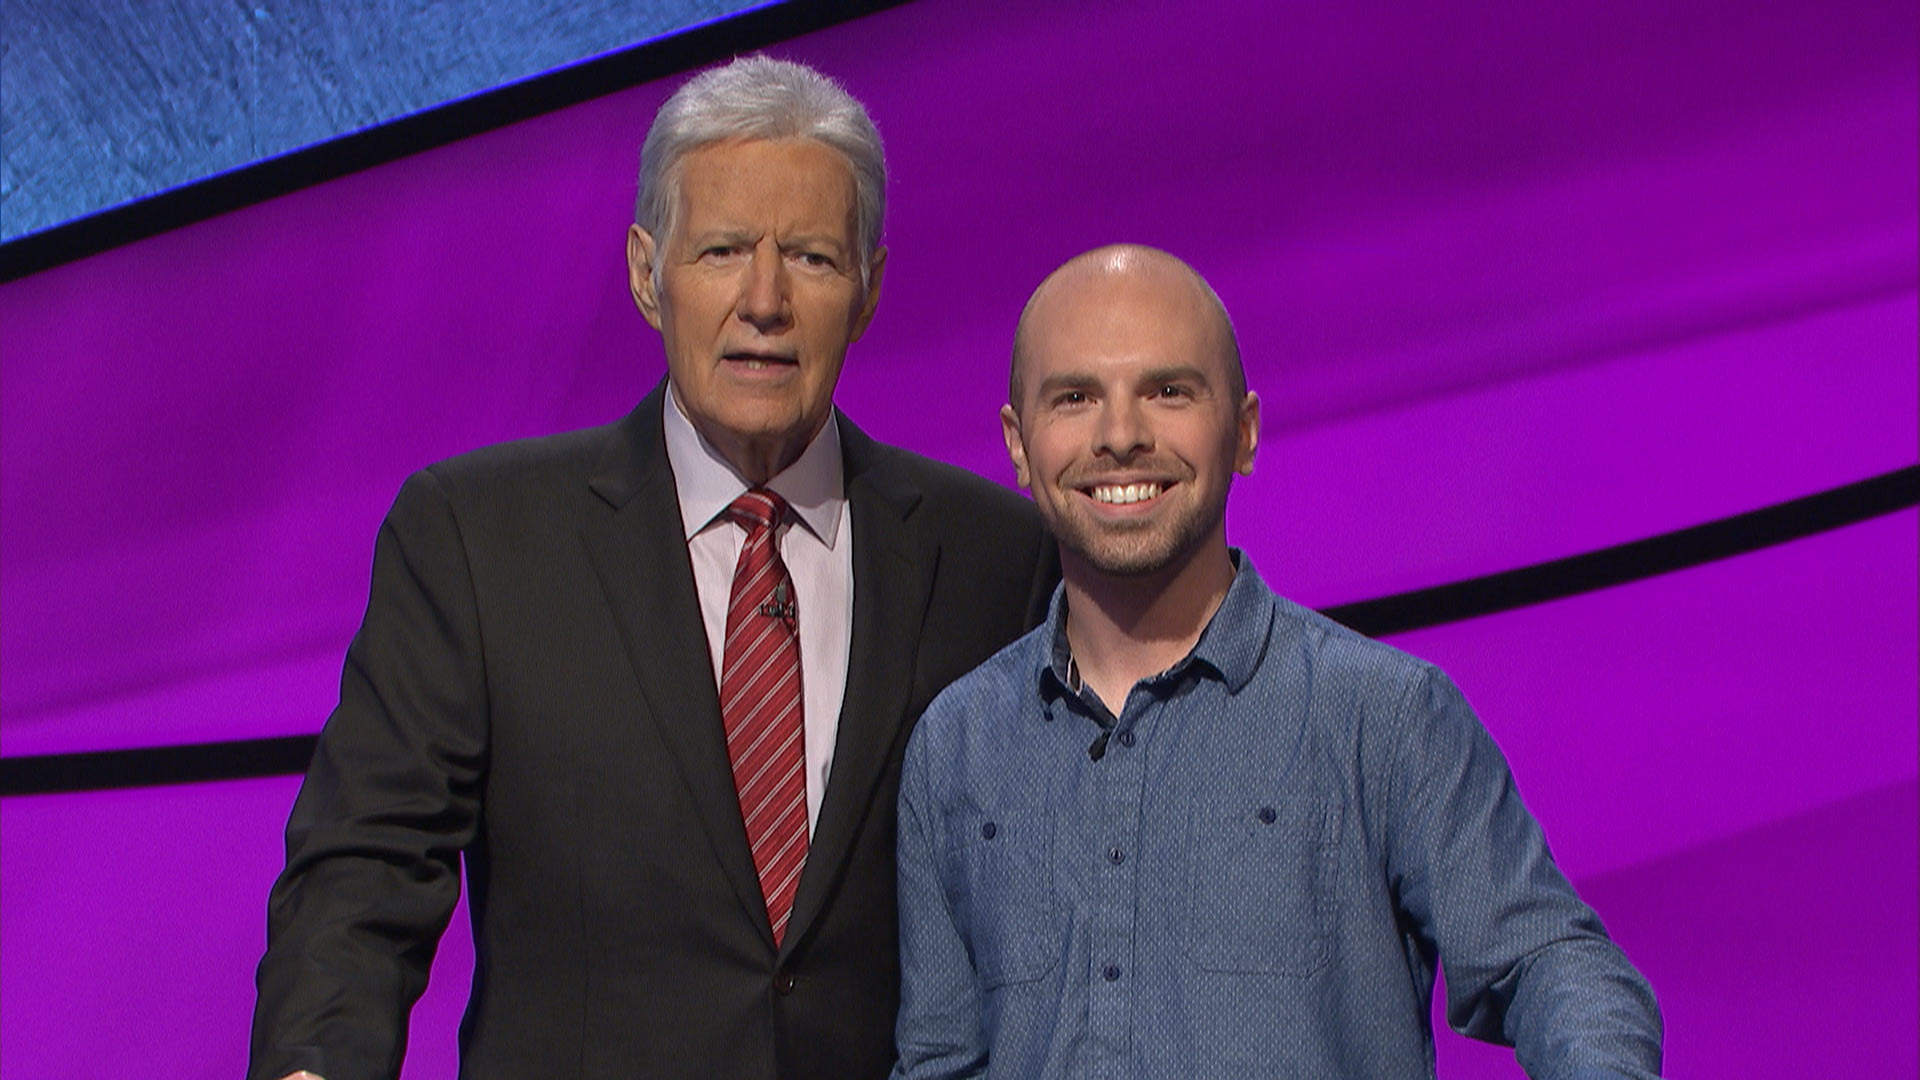 Steven Reich on Jeopardy